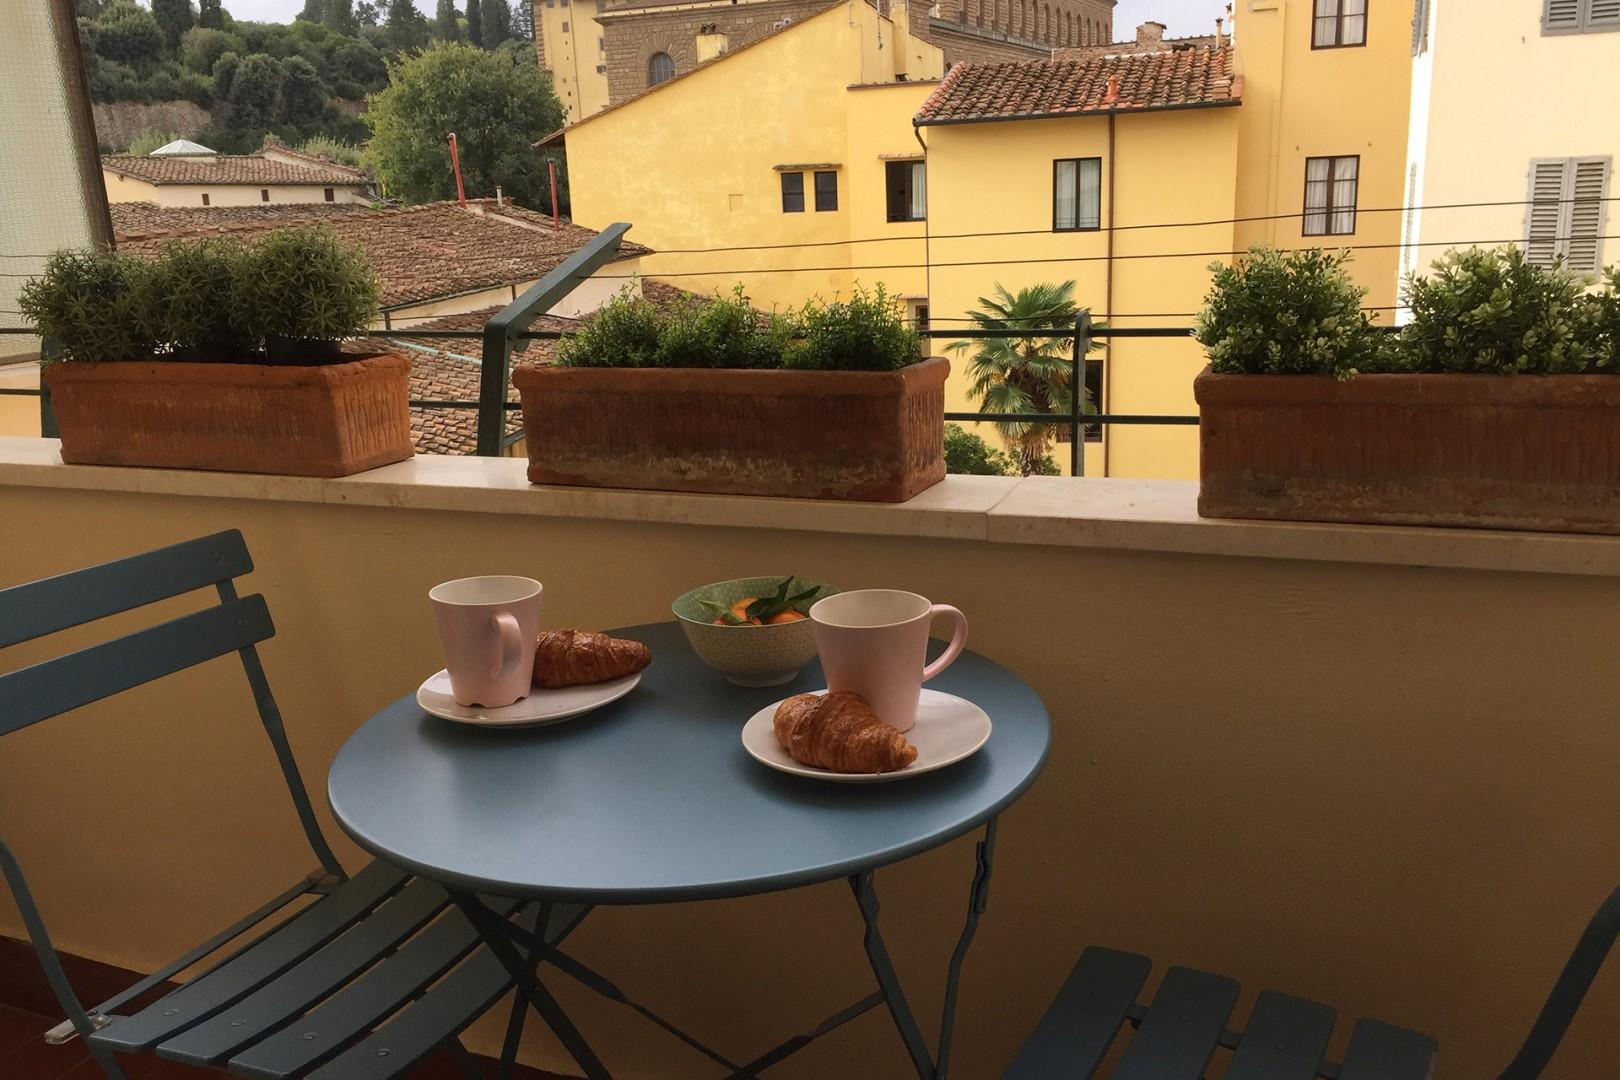 A charming small balcony with views of the Boboli Gardens and Pitti Palace.